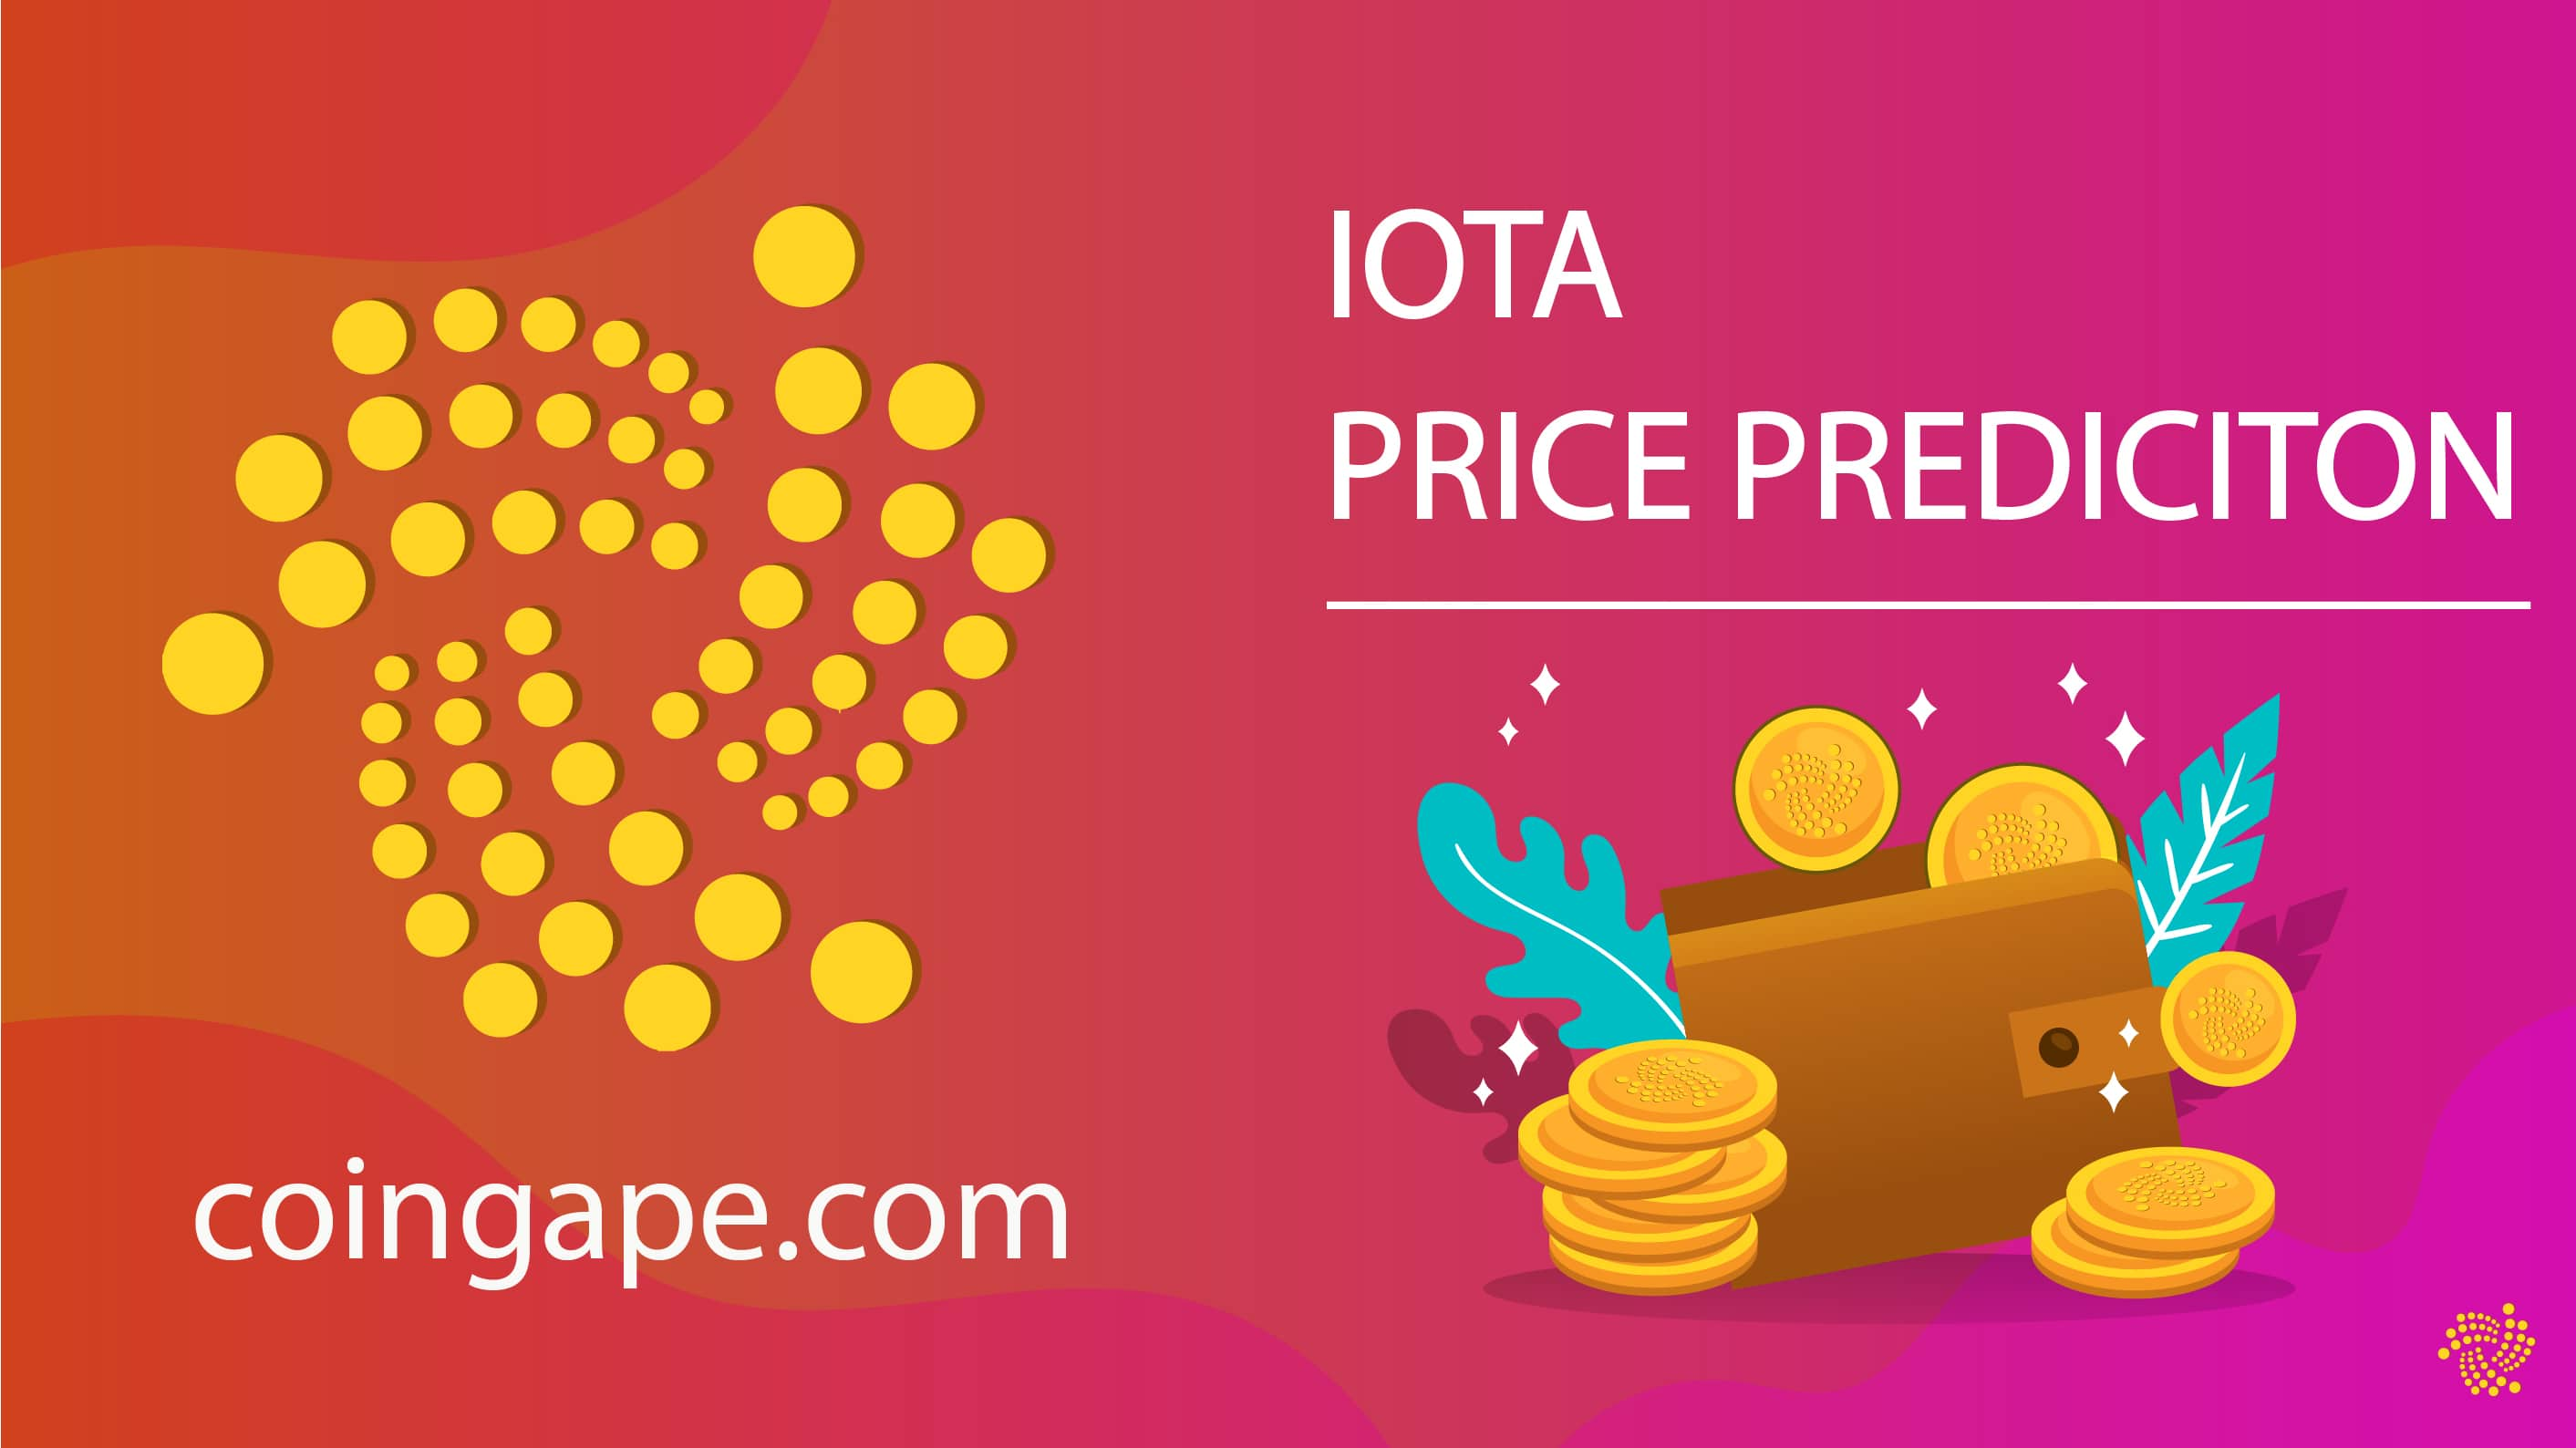 IOTA (MIOTA) Price Prediction: $2.5 by the end of 2020?